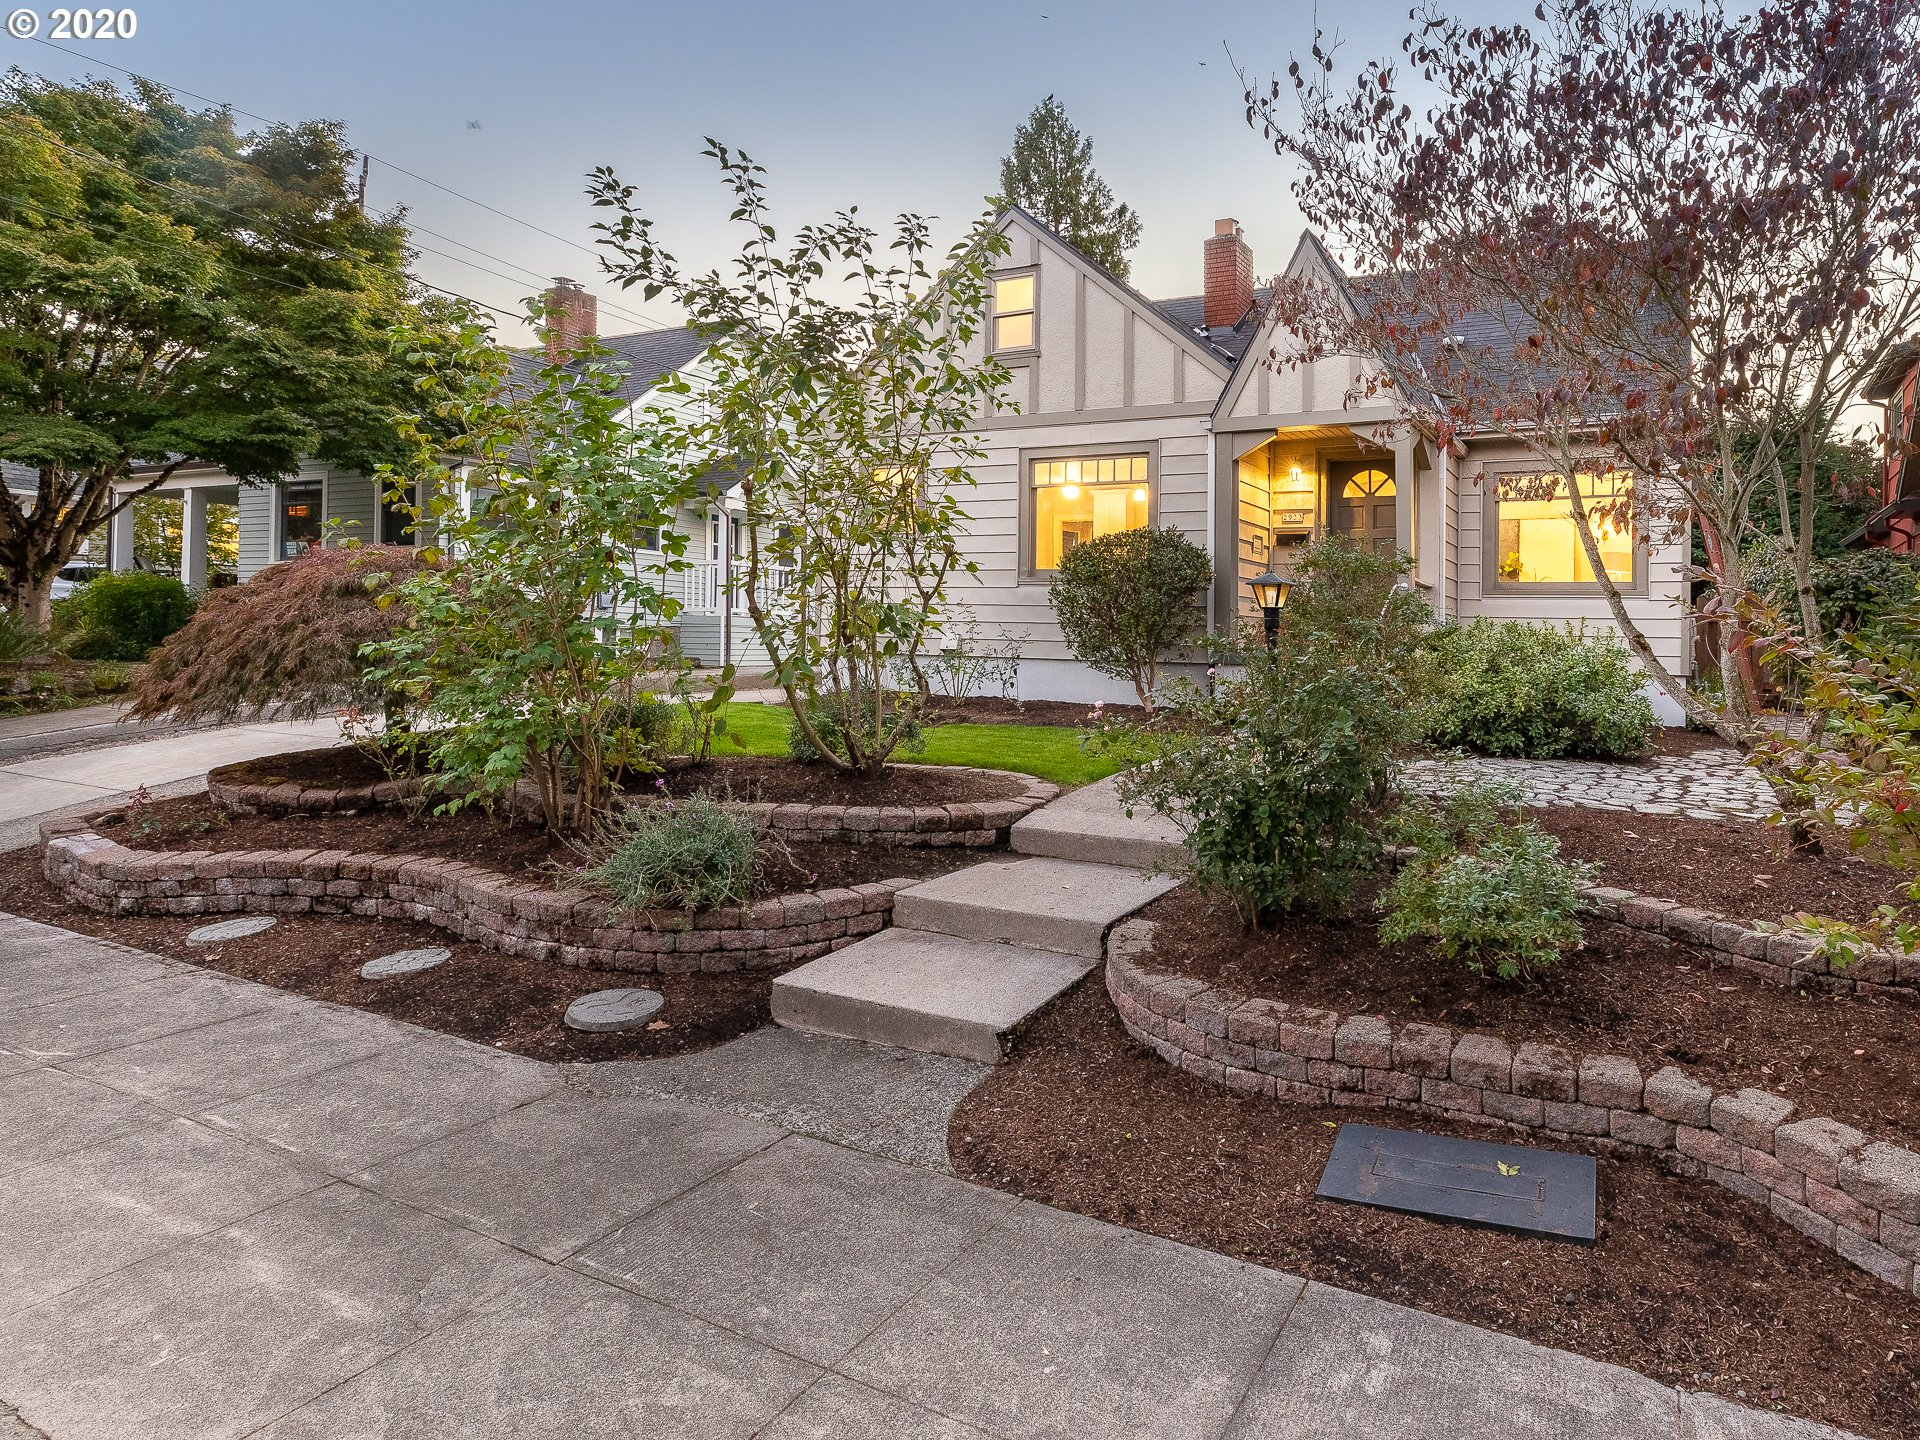 Completely remodeled historic home in the heart of Alameda combines modern upgrades & vintage charm. Brand new kitchen with quartz counters & stainless appliances. Original built-ins & refinished hardwood floors on the main level. Private master suite upstairs & all new bathrooms. Great curb appeal with new landscaping & private backyard. Detached garage plus 800 sq. ft. basement offer plenty of storage space. This home has it all -  historic character, brand new updates, & perfect location! [Home Energy Score = 3. HES Report at https://rpt.greenbuildingregistry.com/hes/OR10183446]